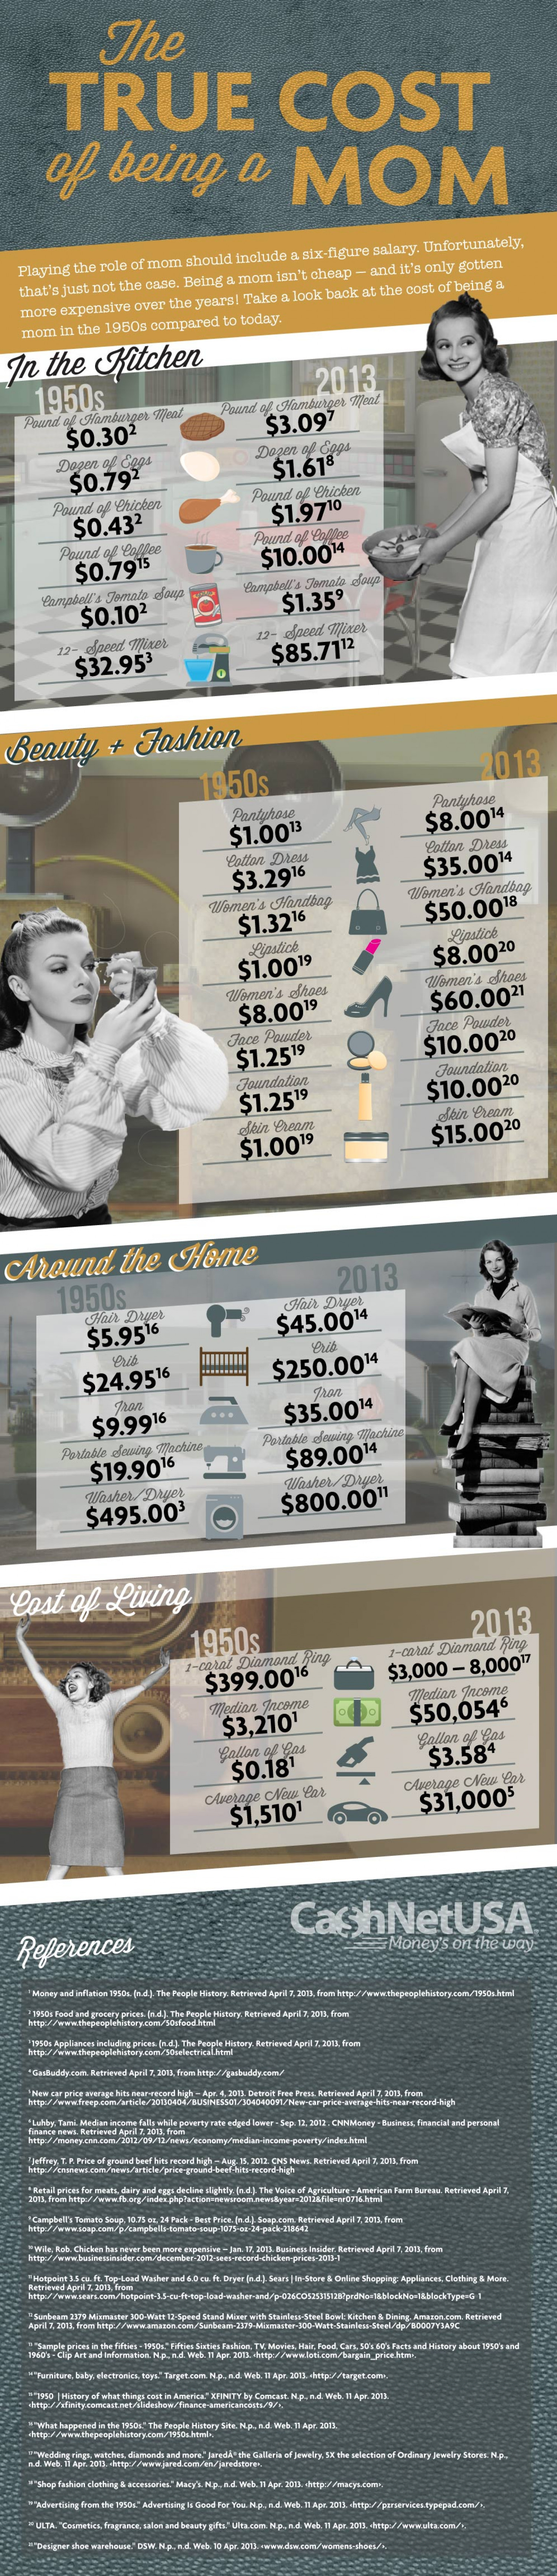 The True Cost of Being a Mom: Mom Costs from the 1950s to Today Infographic